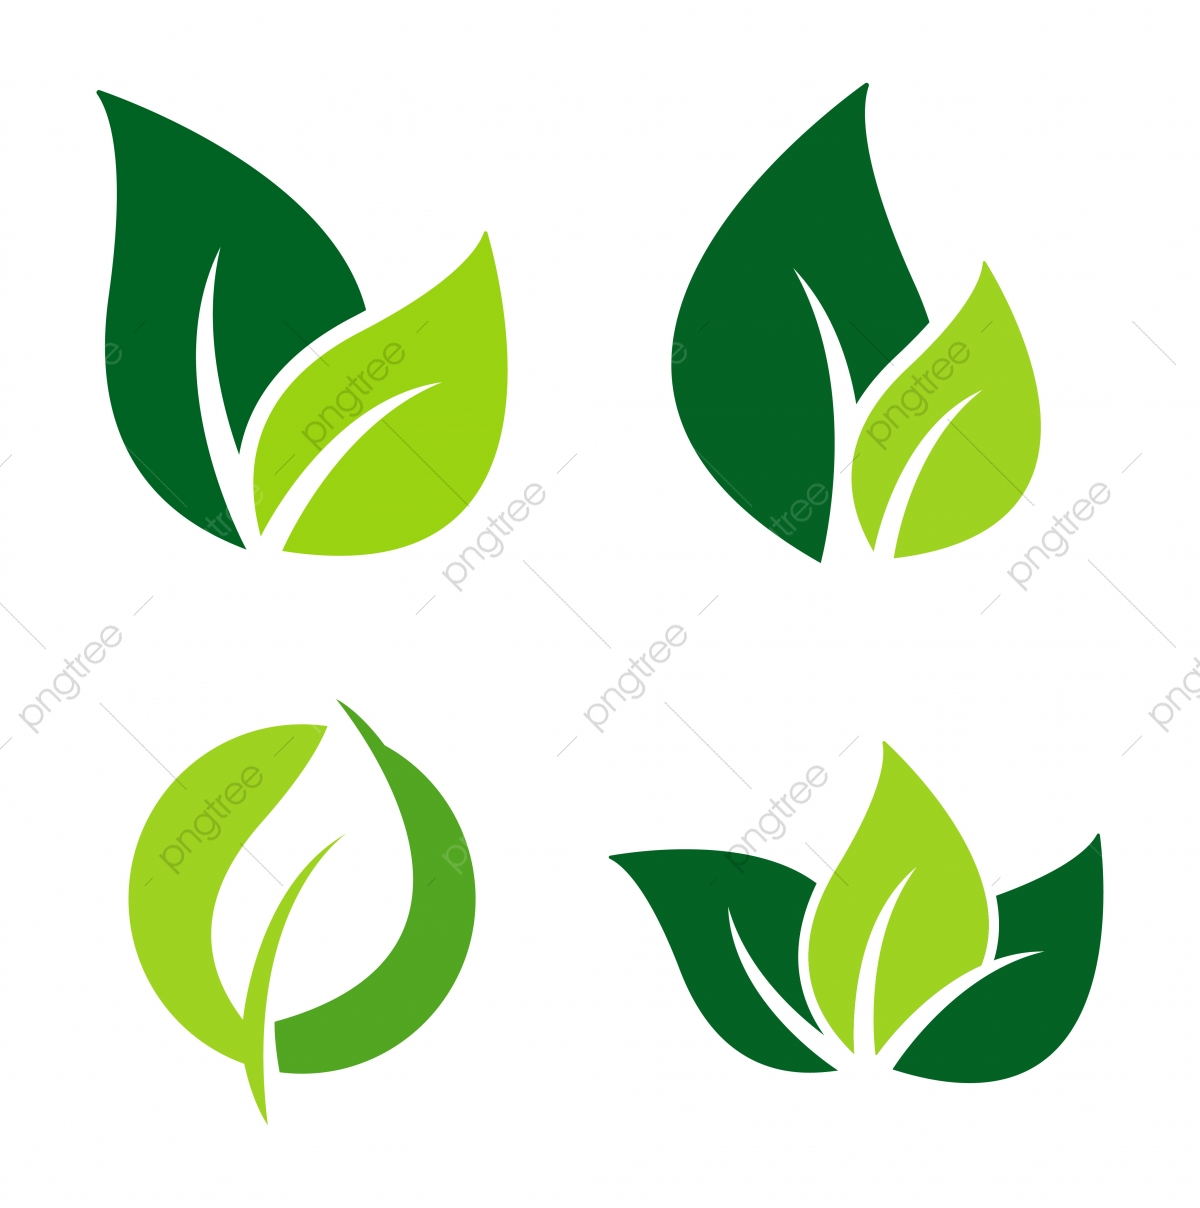 Leaf Logo Png Vector Psd And Clipart With Transparent Background For Free Download Pngtree